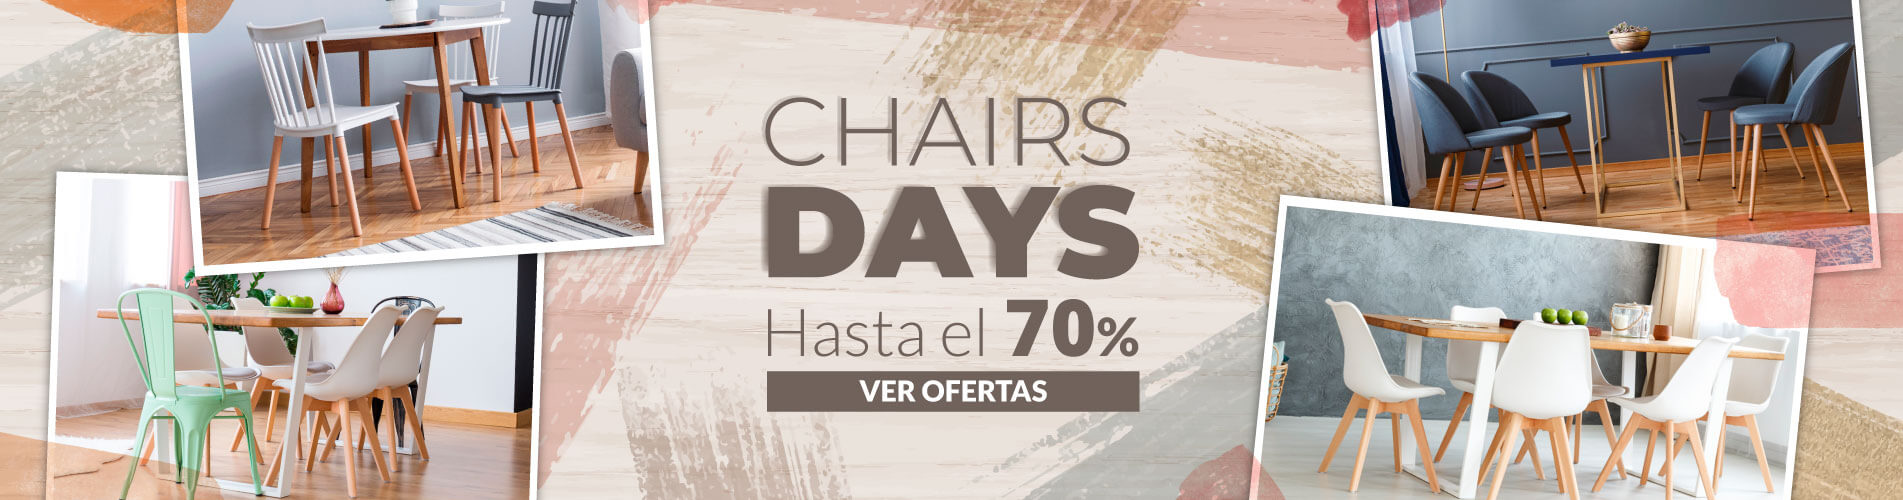 Promoción Chairs days